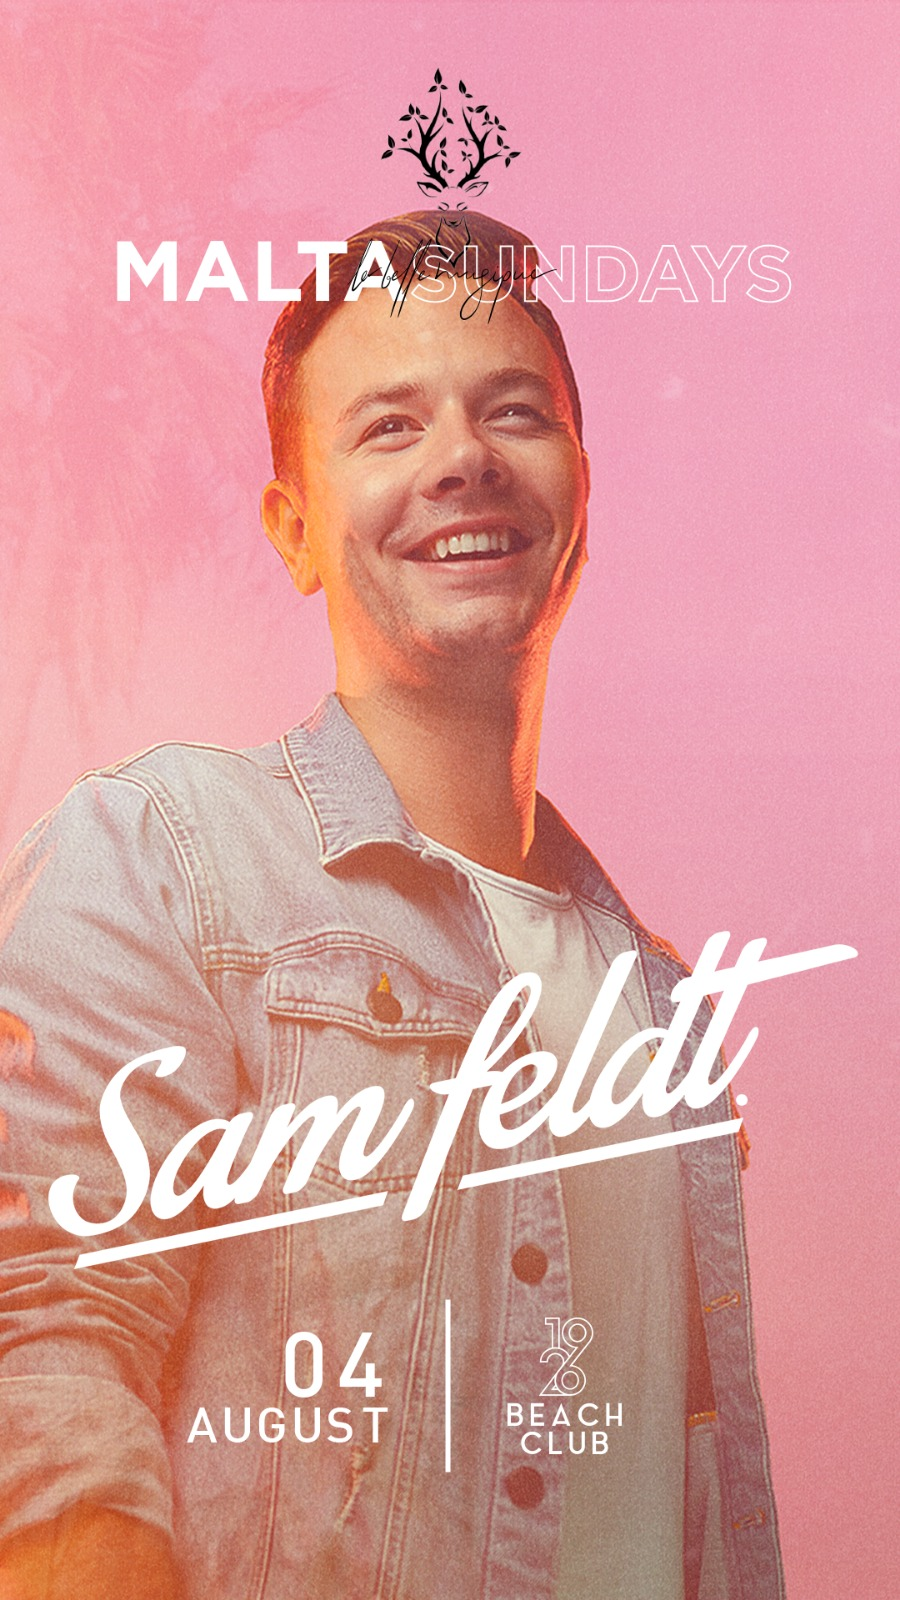 LA BELLE MUSIQUE MALTA SUNDAYS 2019 FT. SAM FELDT flyer